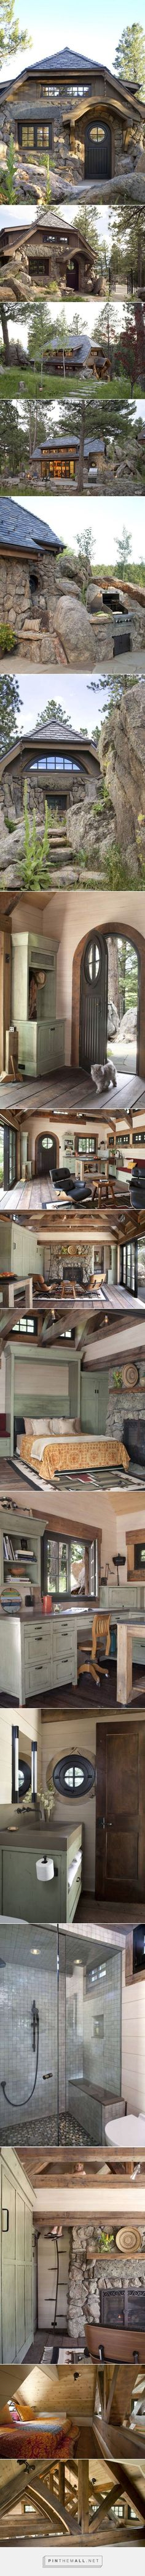 450 Sq. Ft. Small Mountain Cottage | Tiny House Pins... - a grouped images picture - Pin Them All http://tinyhousepins.com/450-sq-ft-small-mountain-cottage/